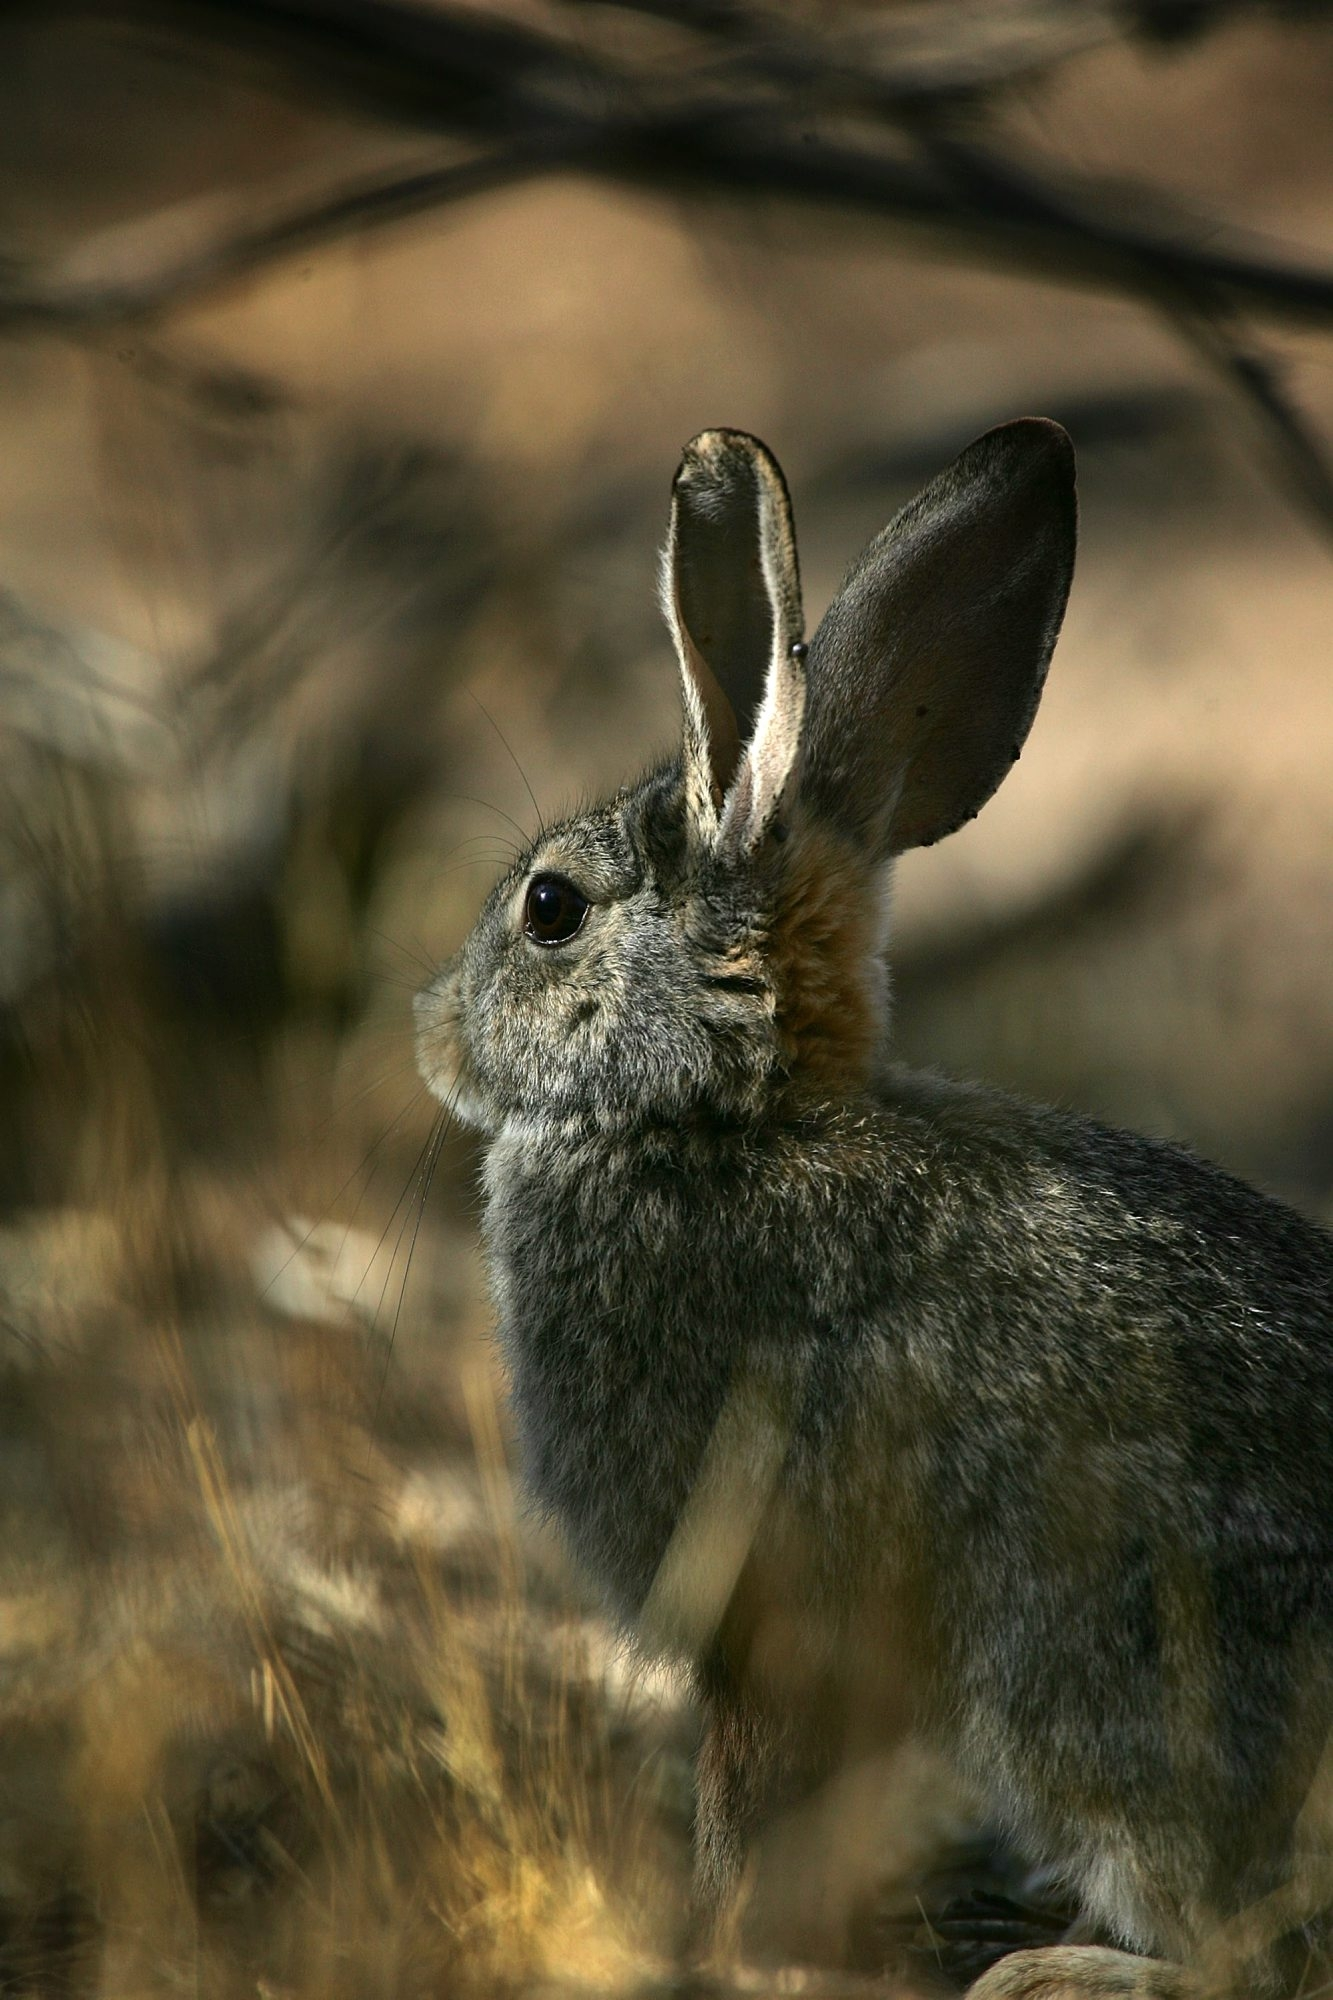 Nature Watch: Rabbits in the wild have short, difficult